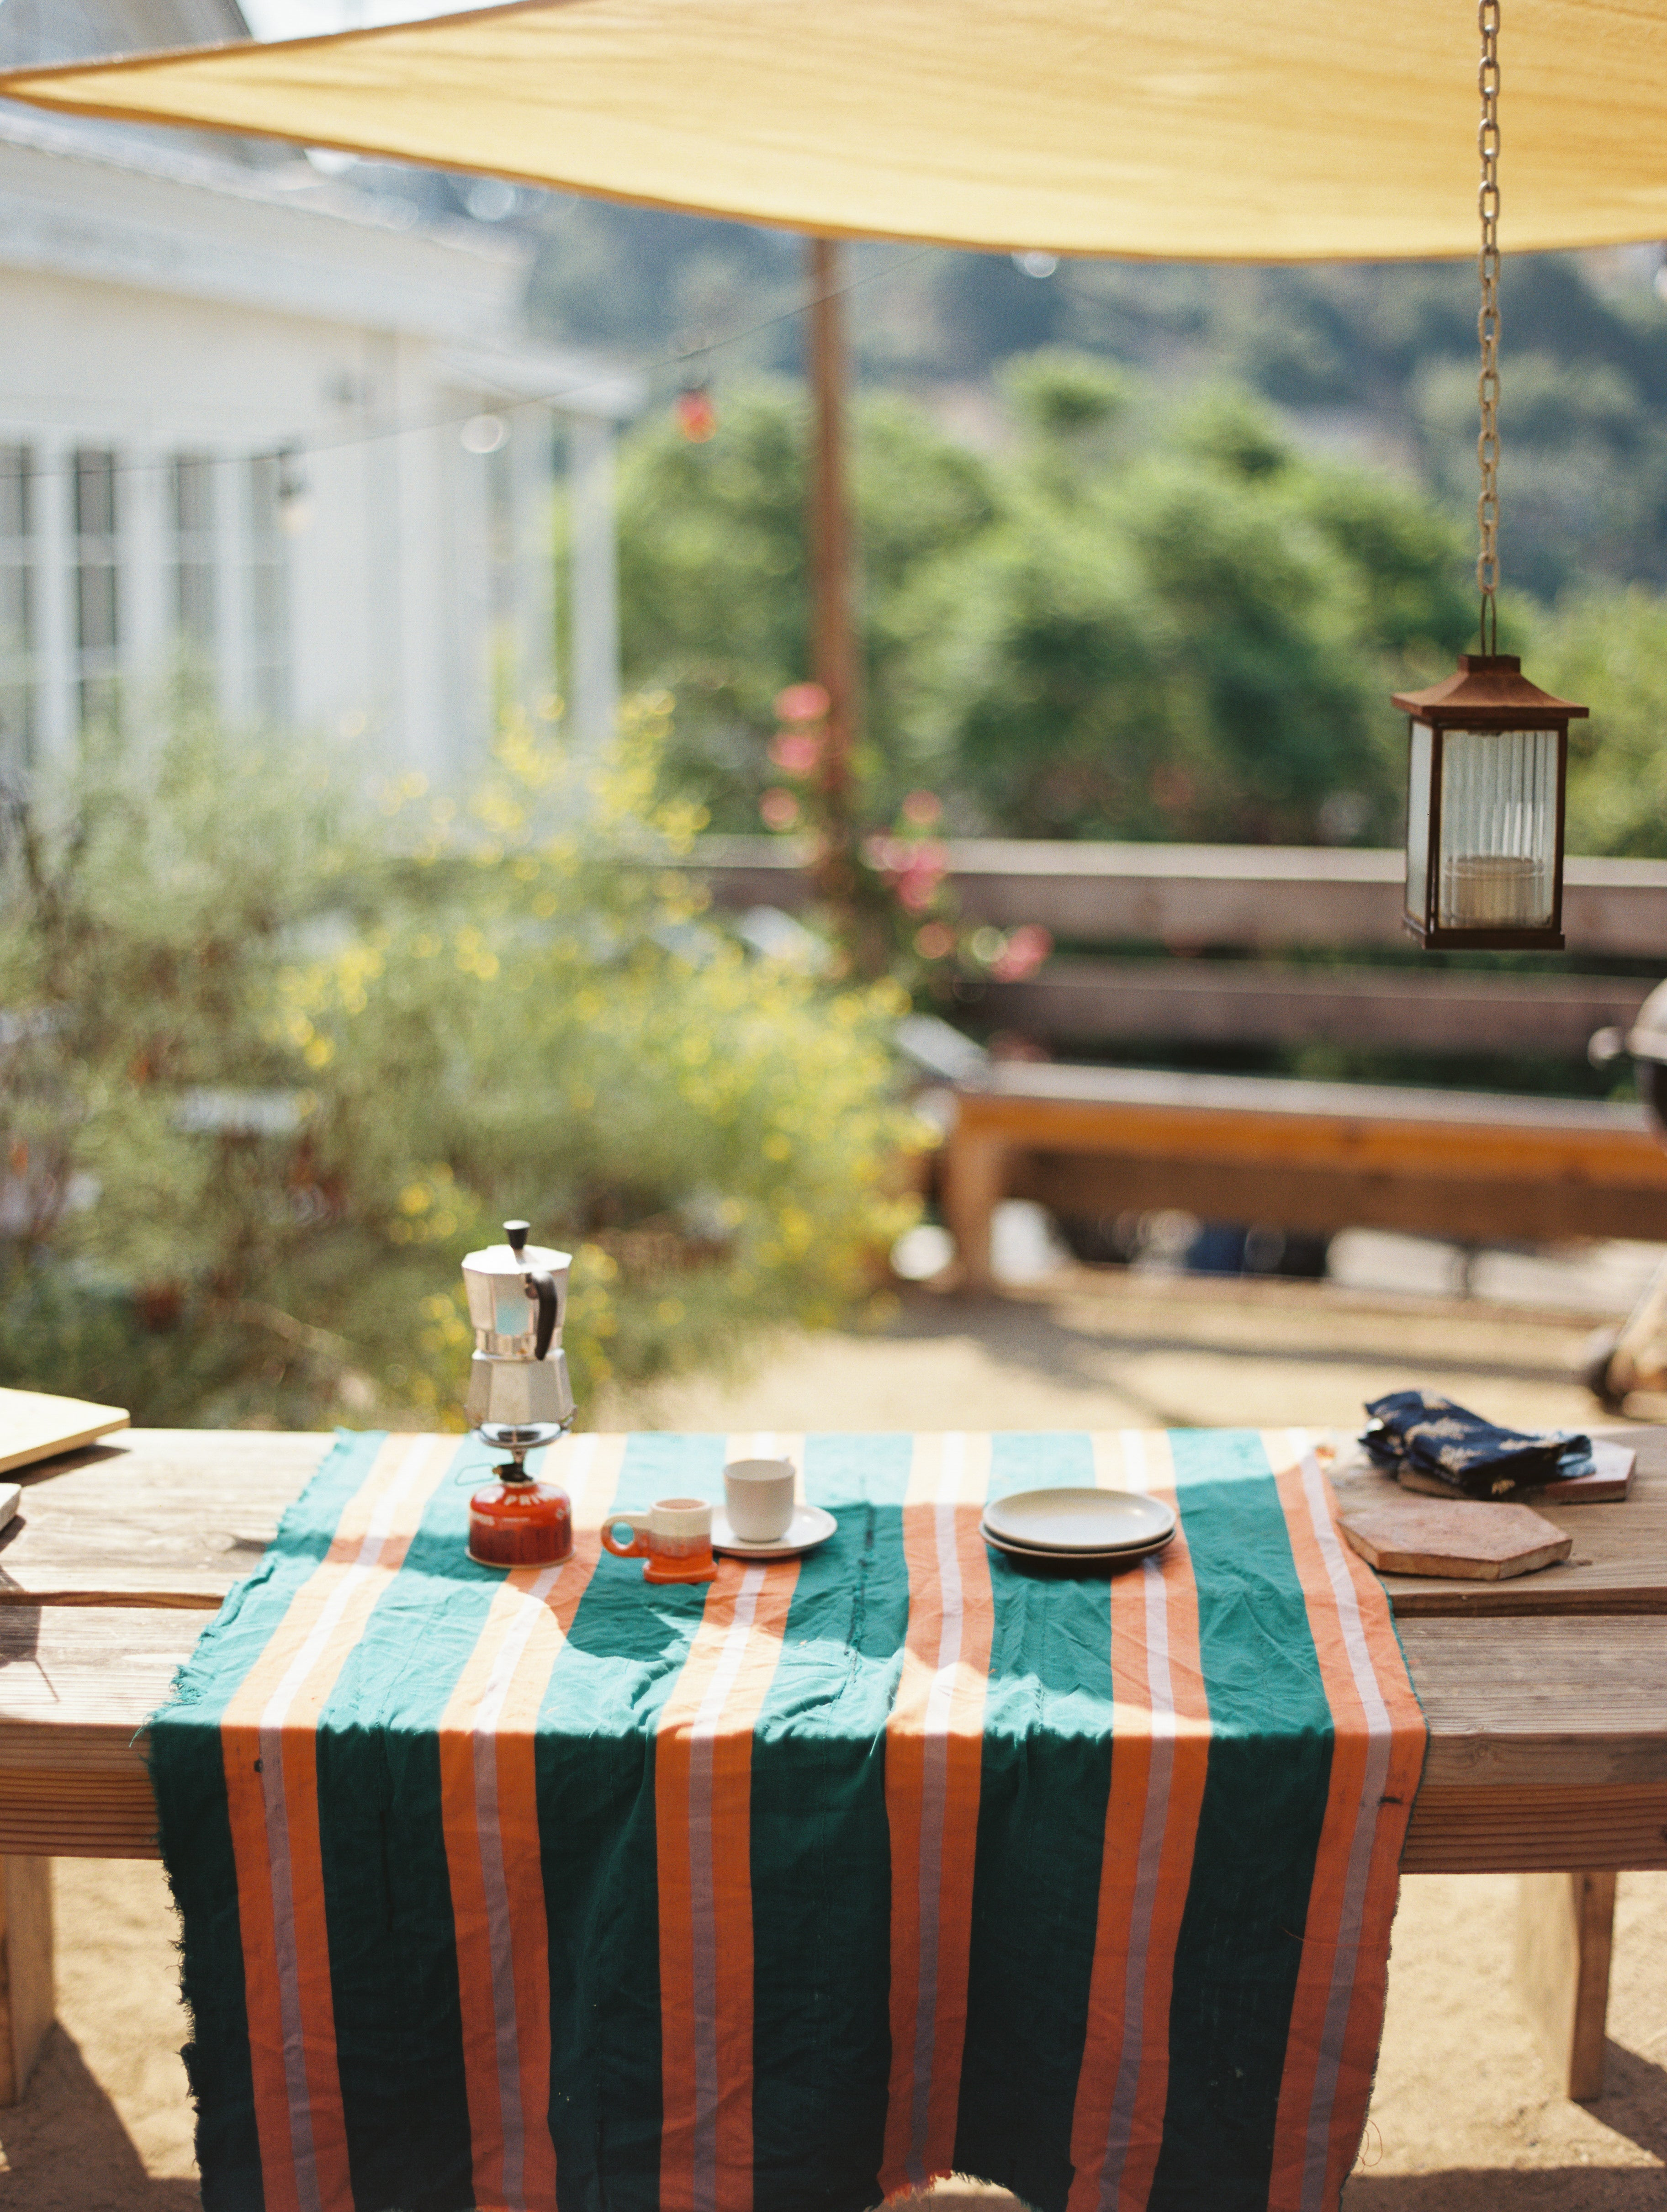 Outdoor coffee set up at the Los Angeles home of Alex Tieghi-Walker   Photo by Justin Chung